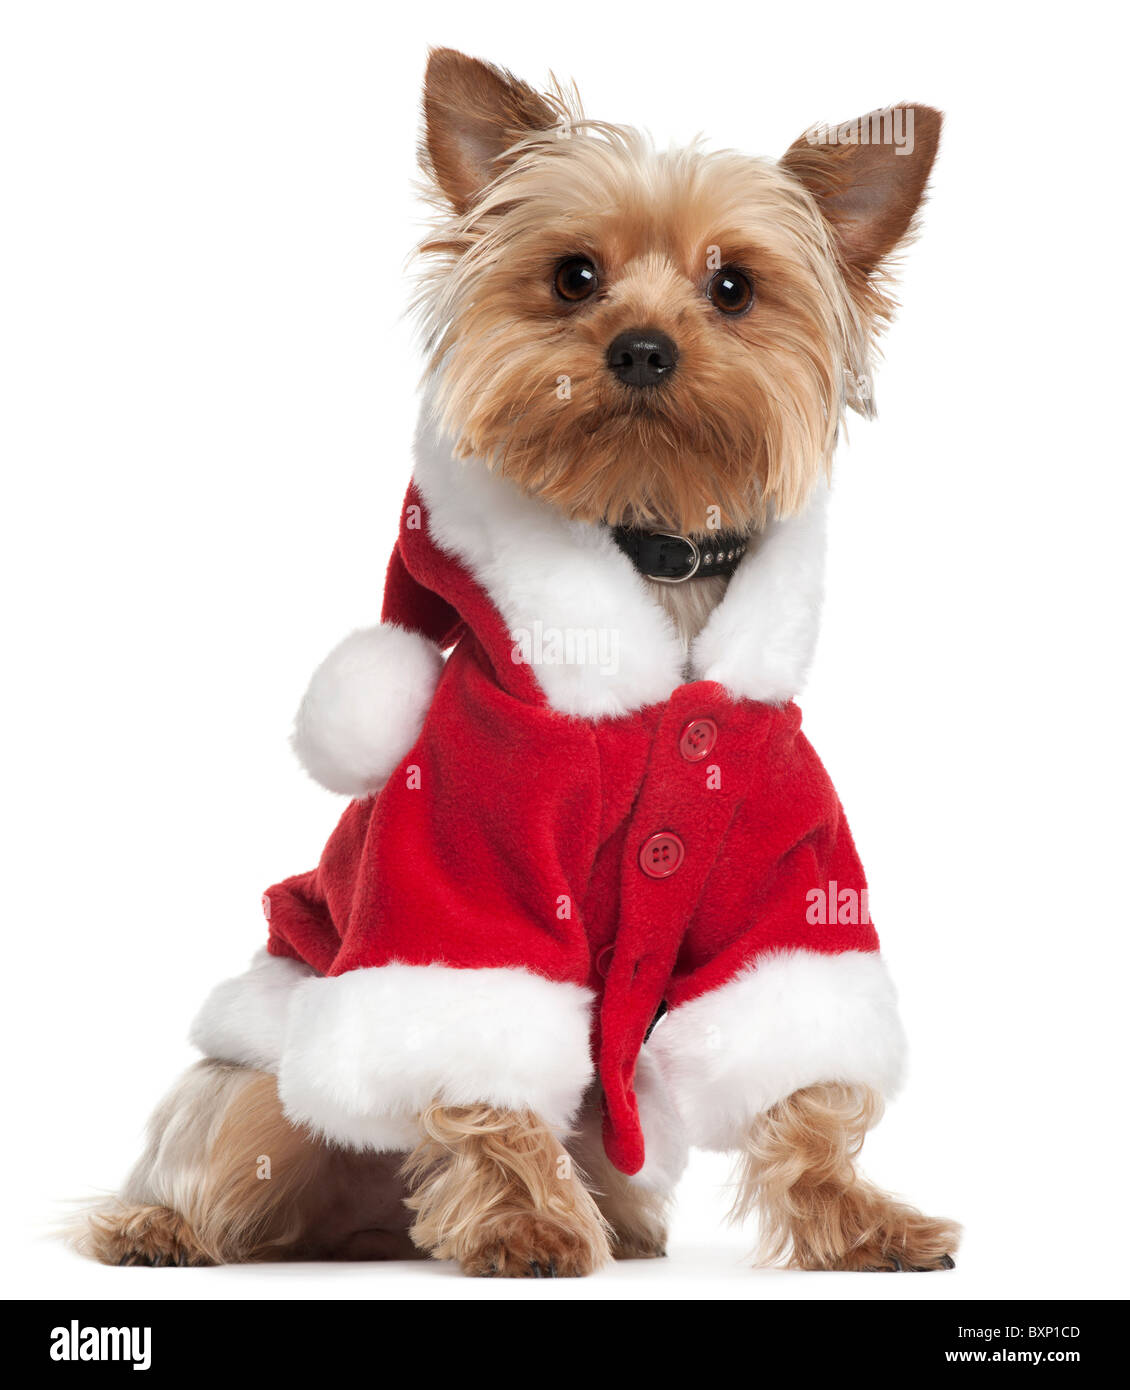 Yorkshire Terrier wearing Santa outfit, 12 months old, in front of white background - Stock Image